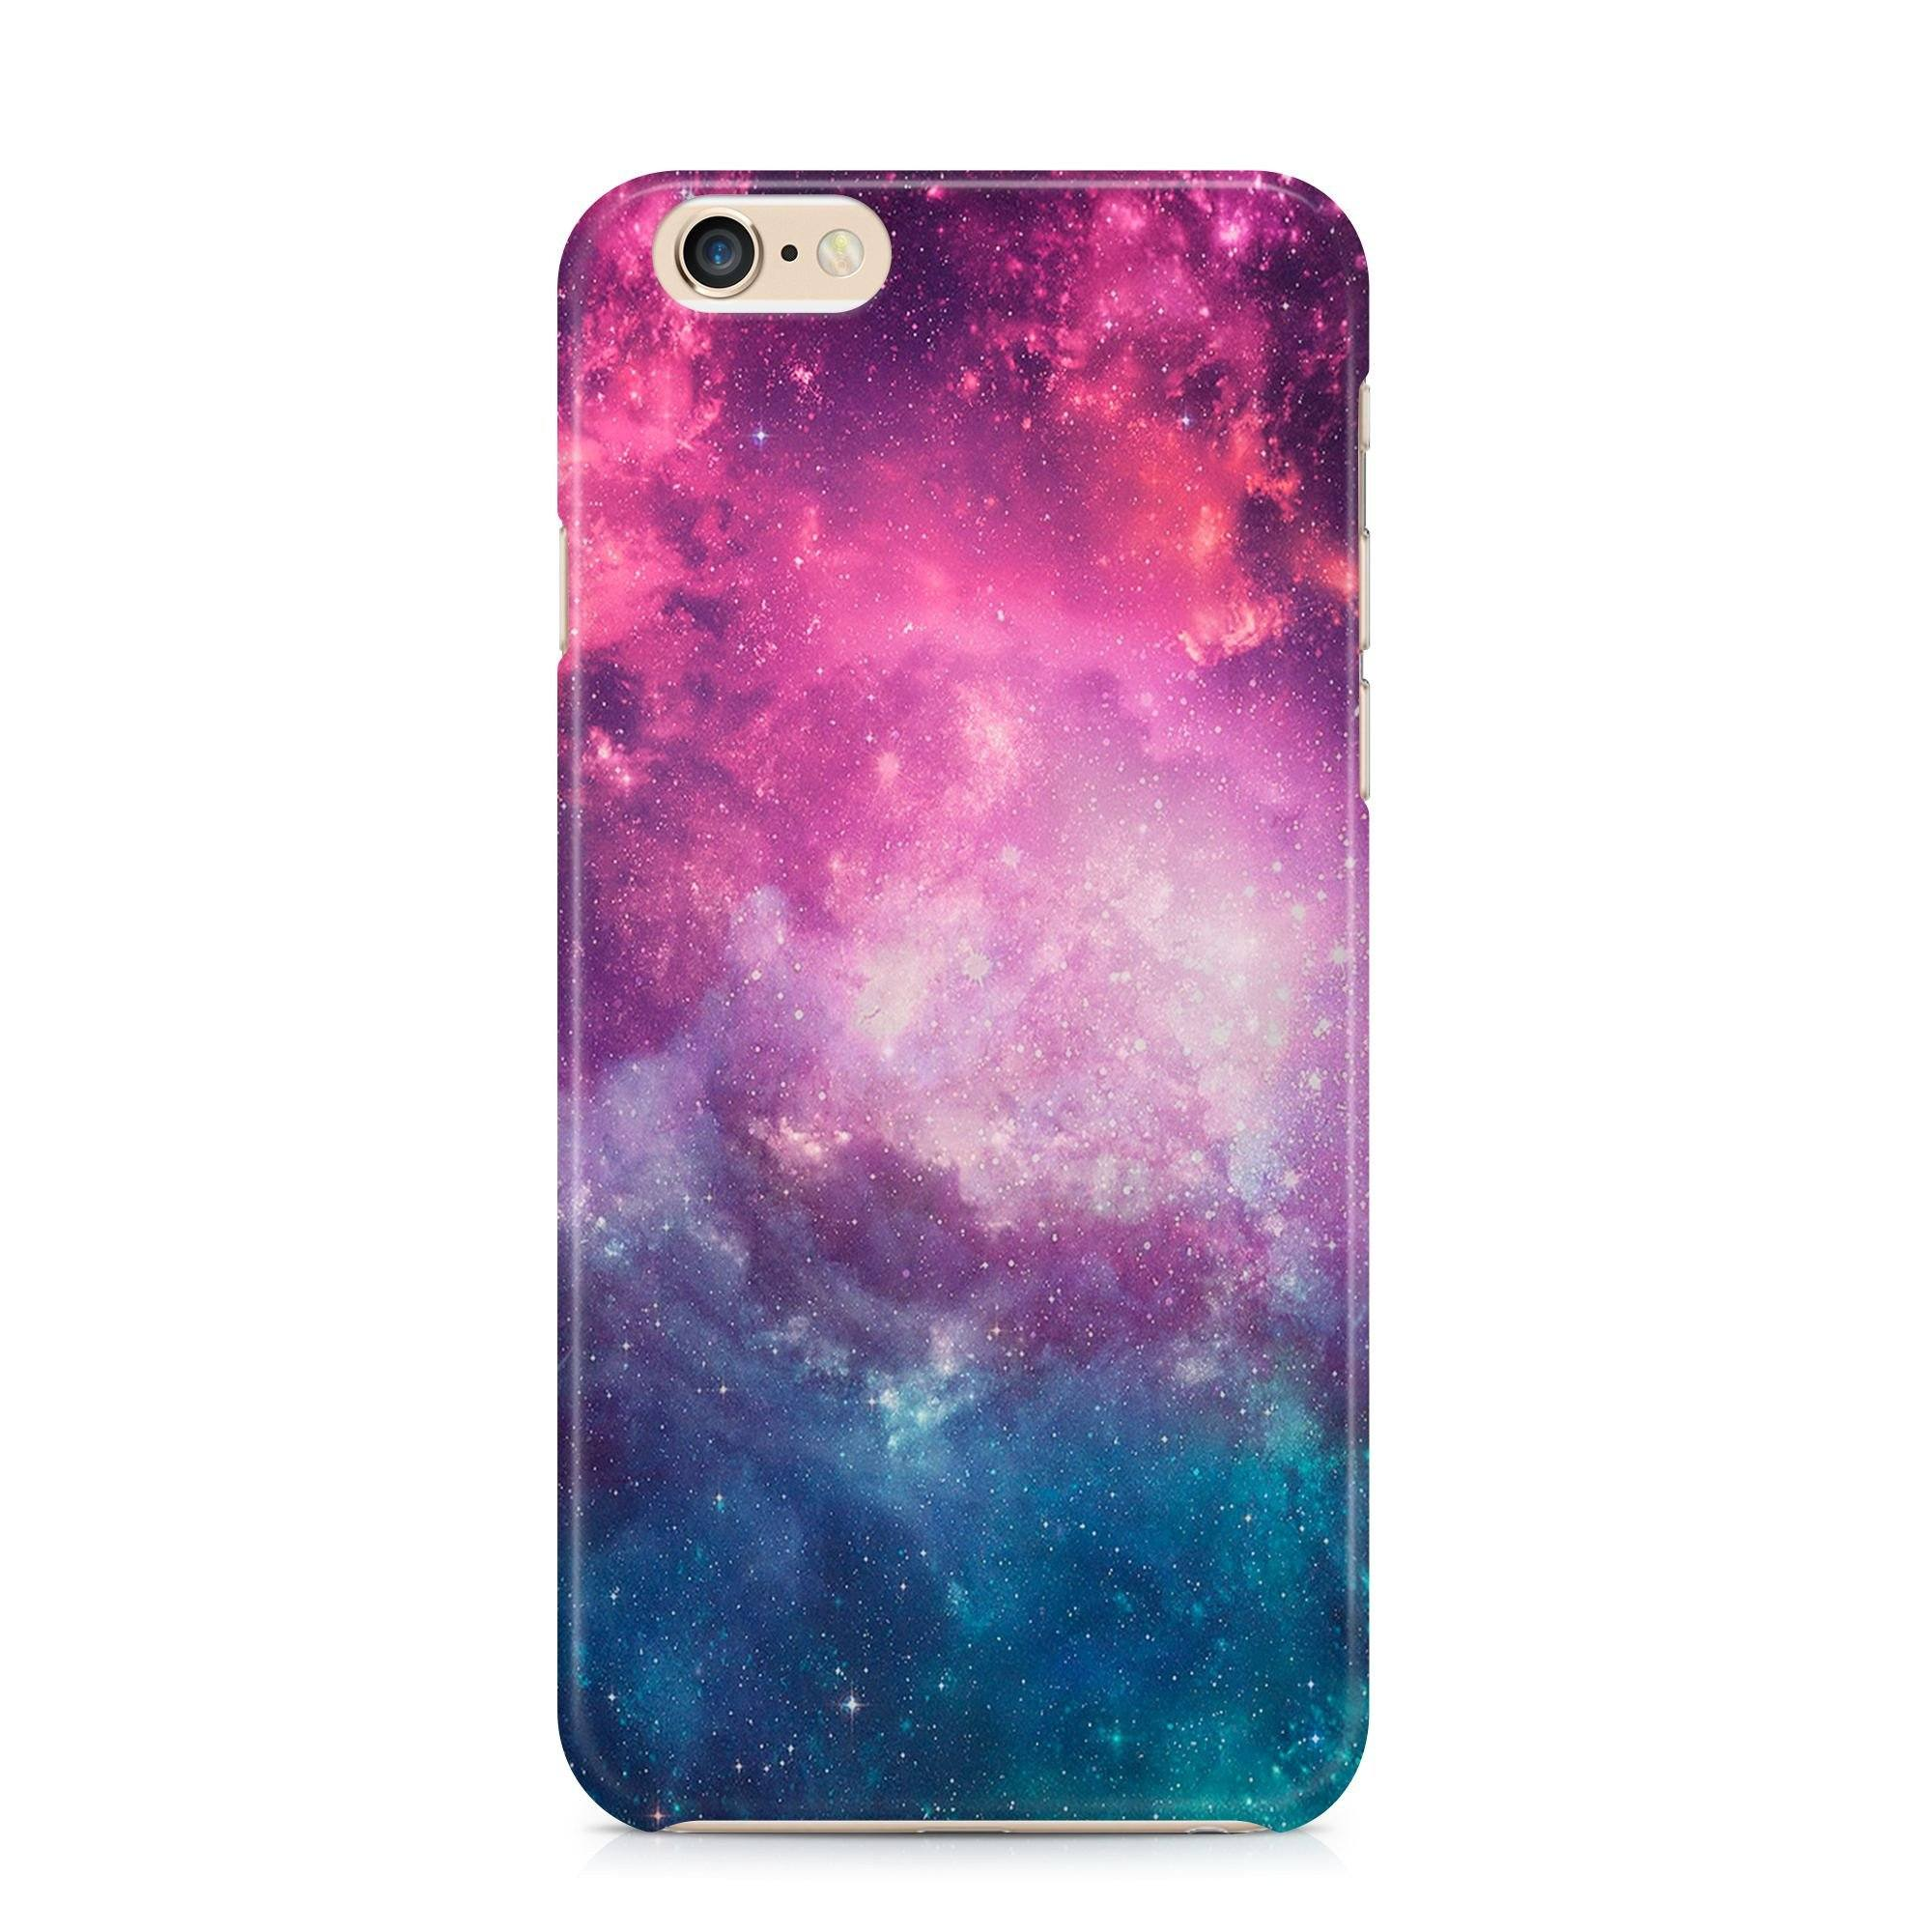 iPhone 6/6s hoesje - PinkBlue Space - PhoneJunkie